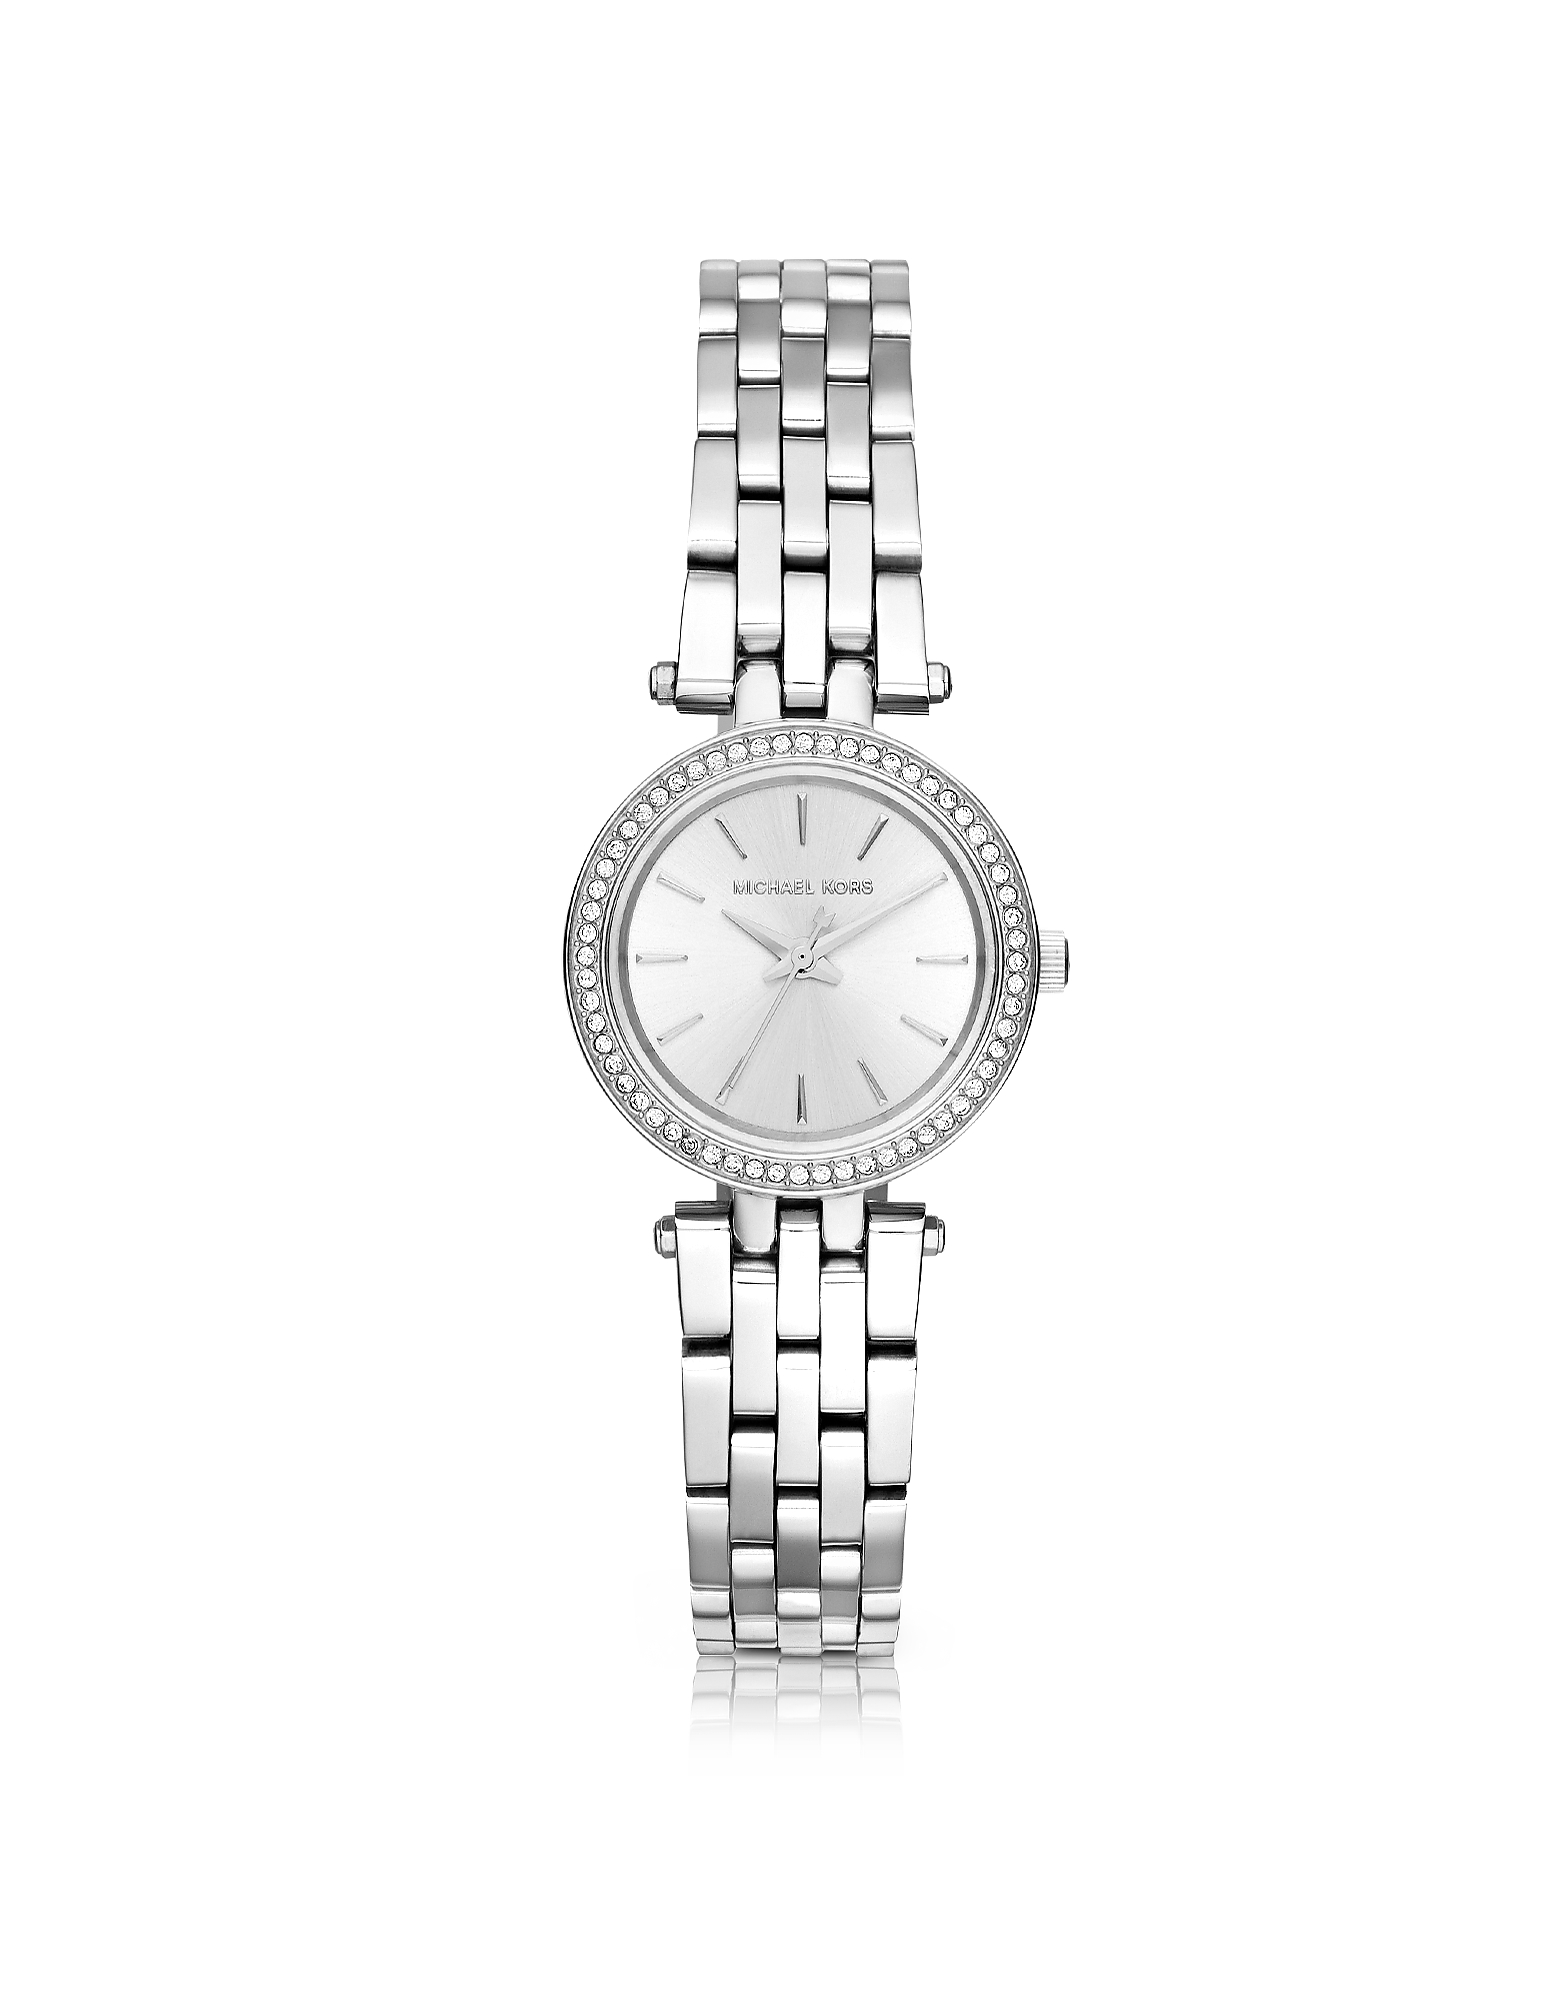 Michael Kors Women's Watches, Petite Darci Stainless Steel Women's Watch